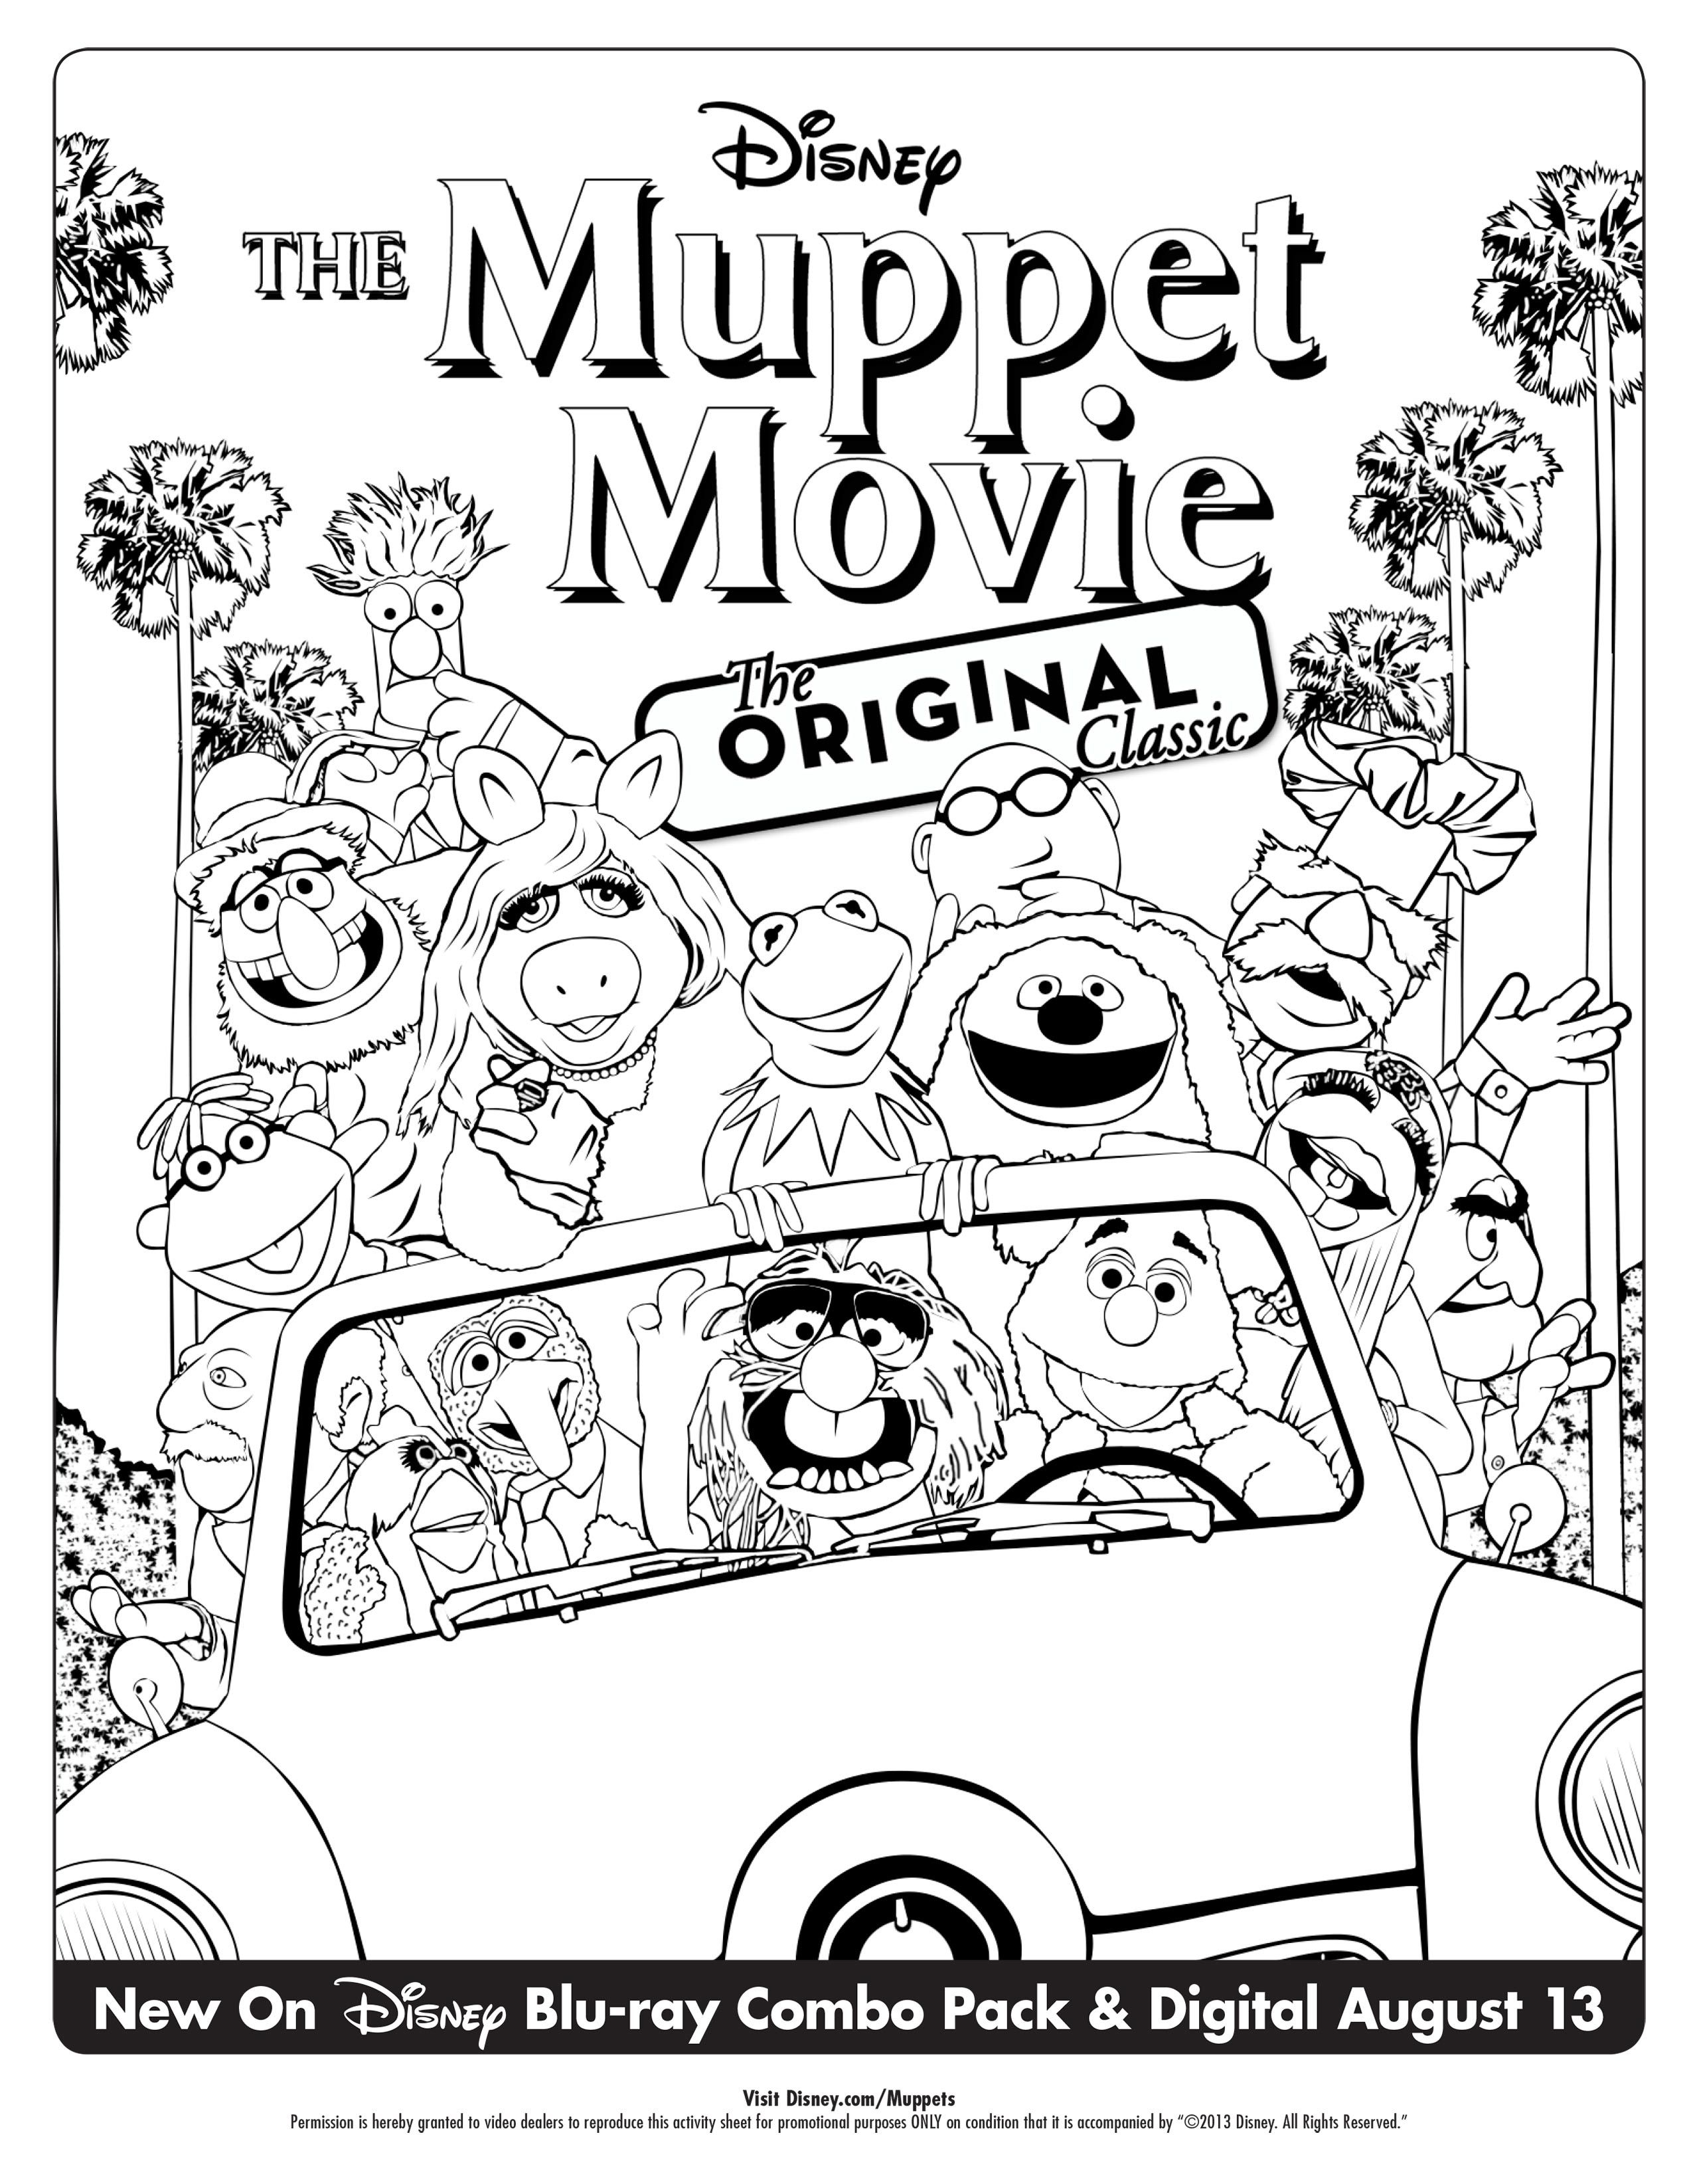 Get Your Family Ready For The Muppet Movie Nearly 35th Anniversary Edition Blu Ray Combo Pack With Th Disney Coloring Pages Disney Quilt Cartoon Coloring Pages